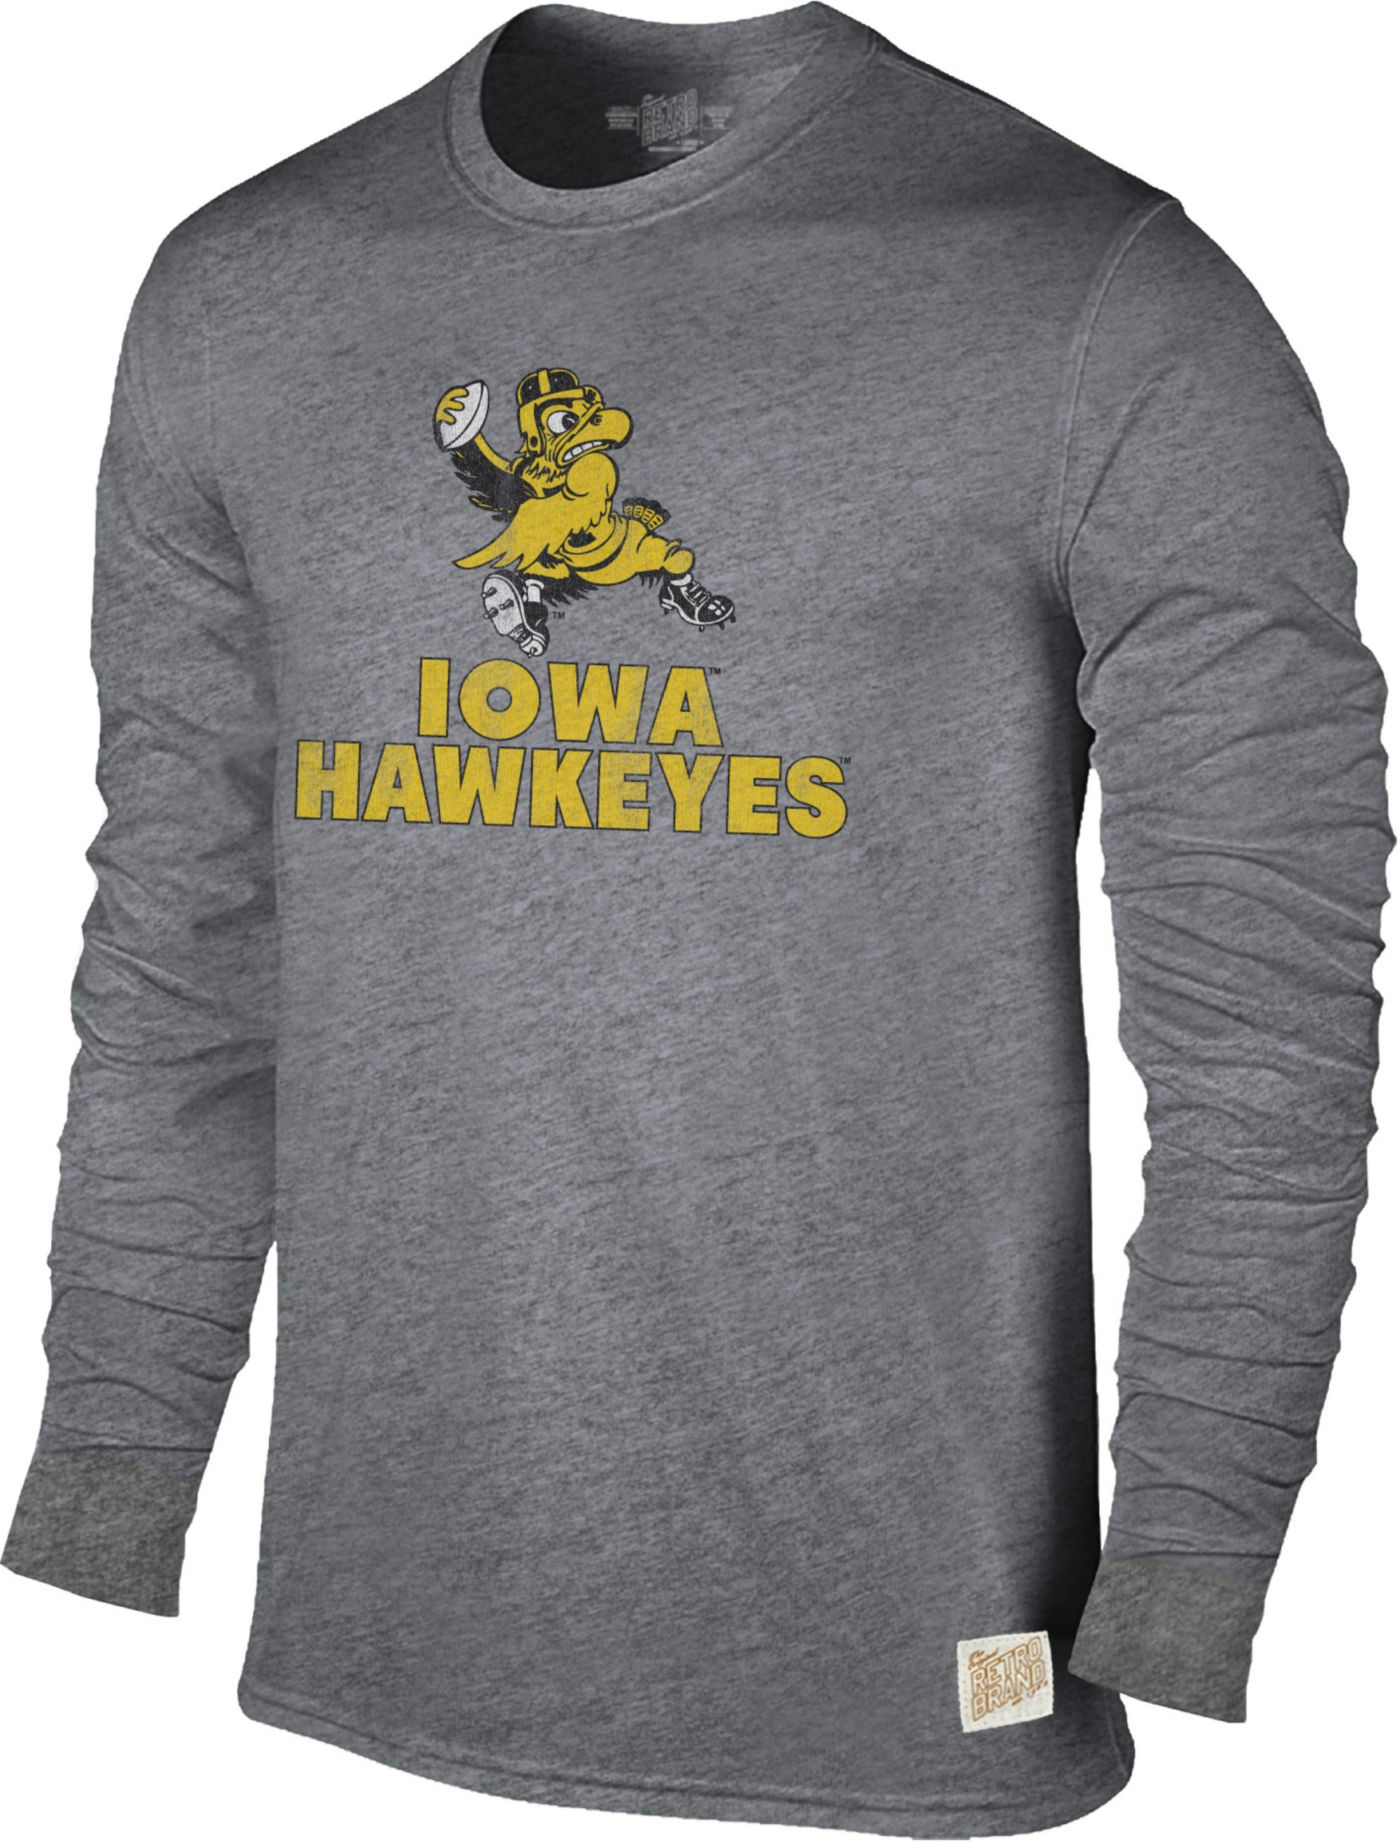 Original Retro Brand Men's Iowa Hawkeyes Grey Tri-Blend Long Sleeve T-Shirt